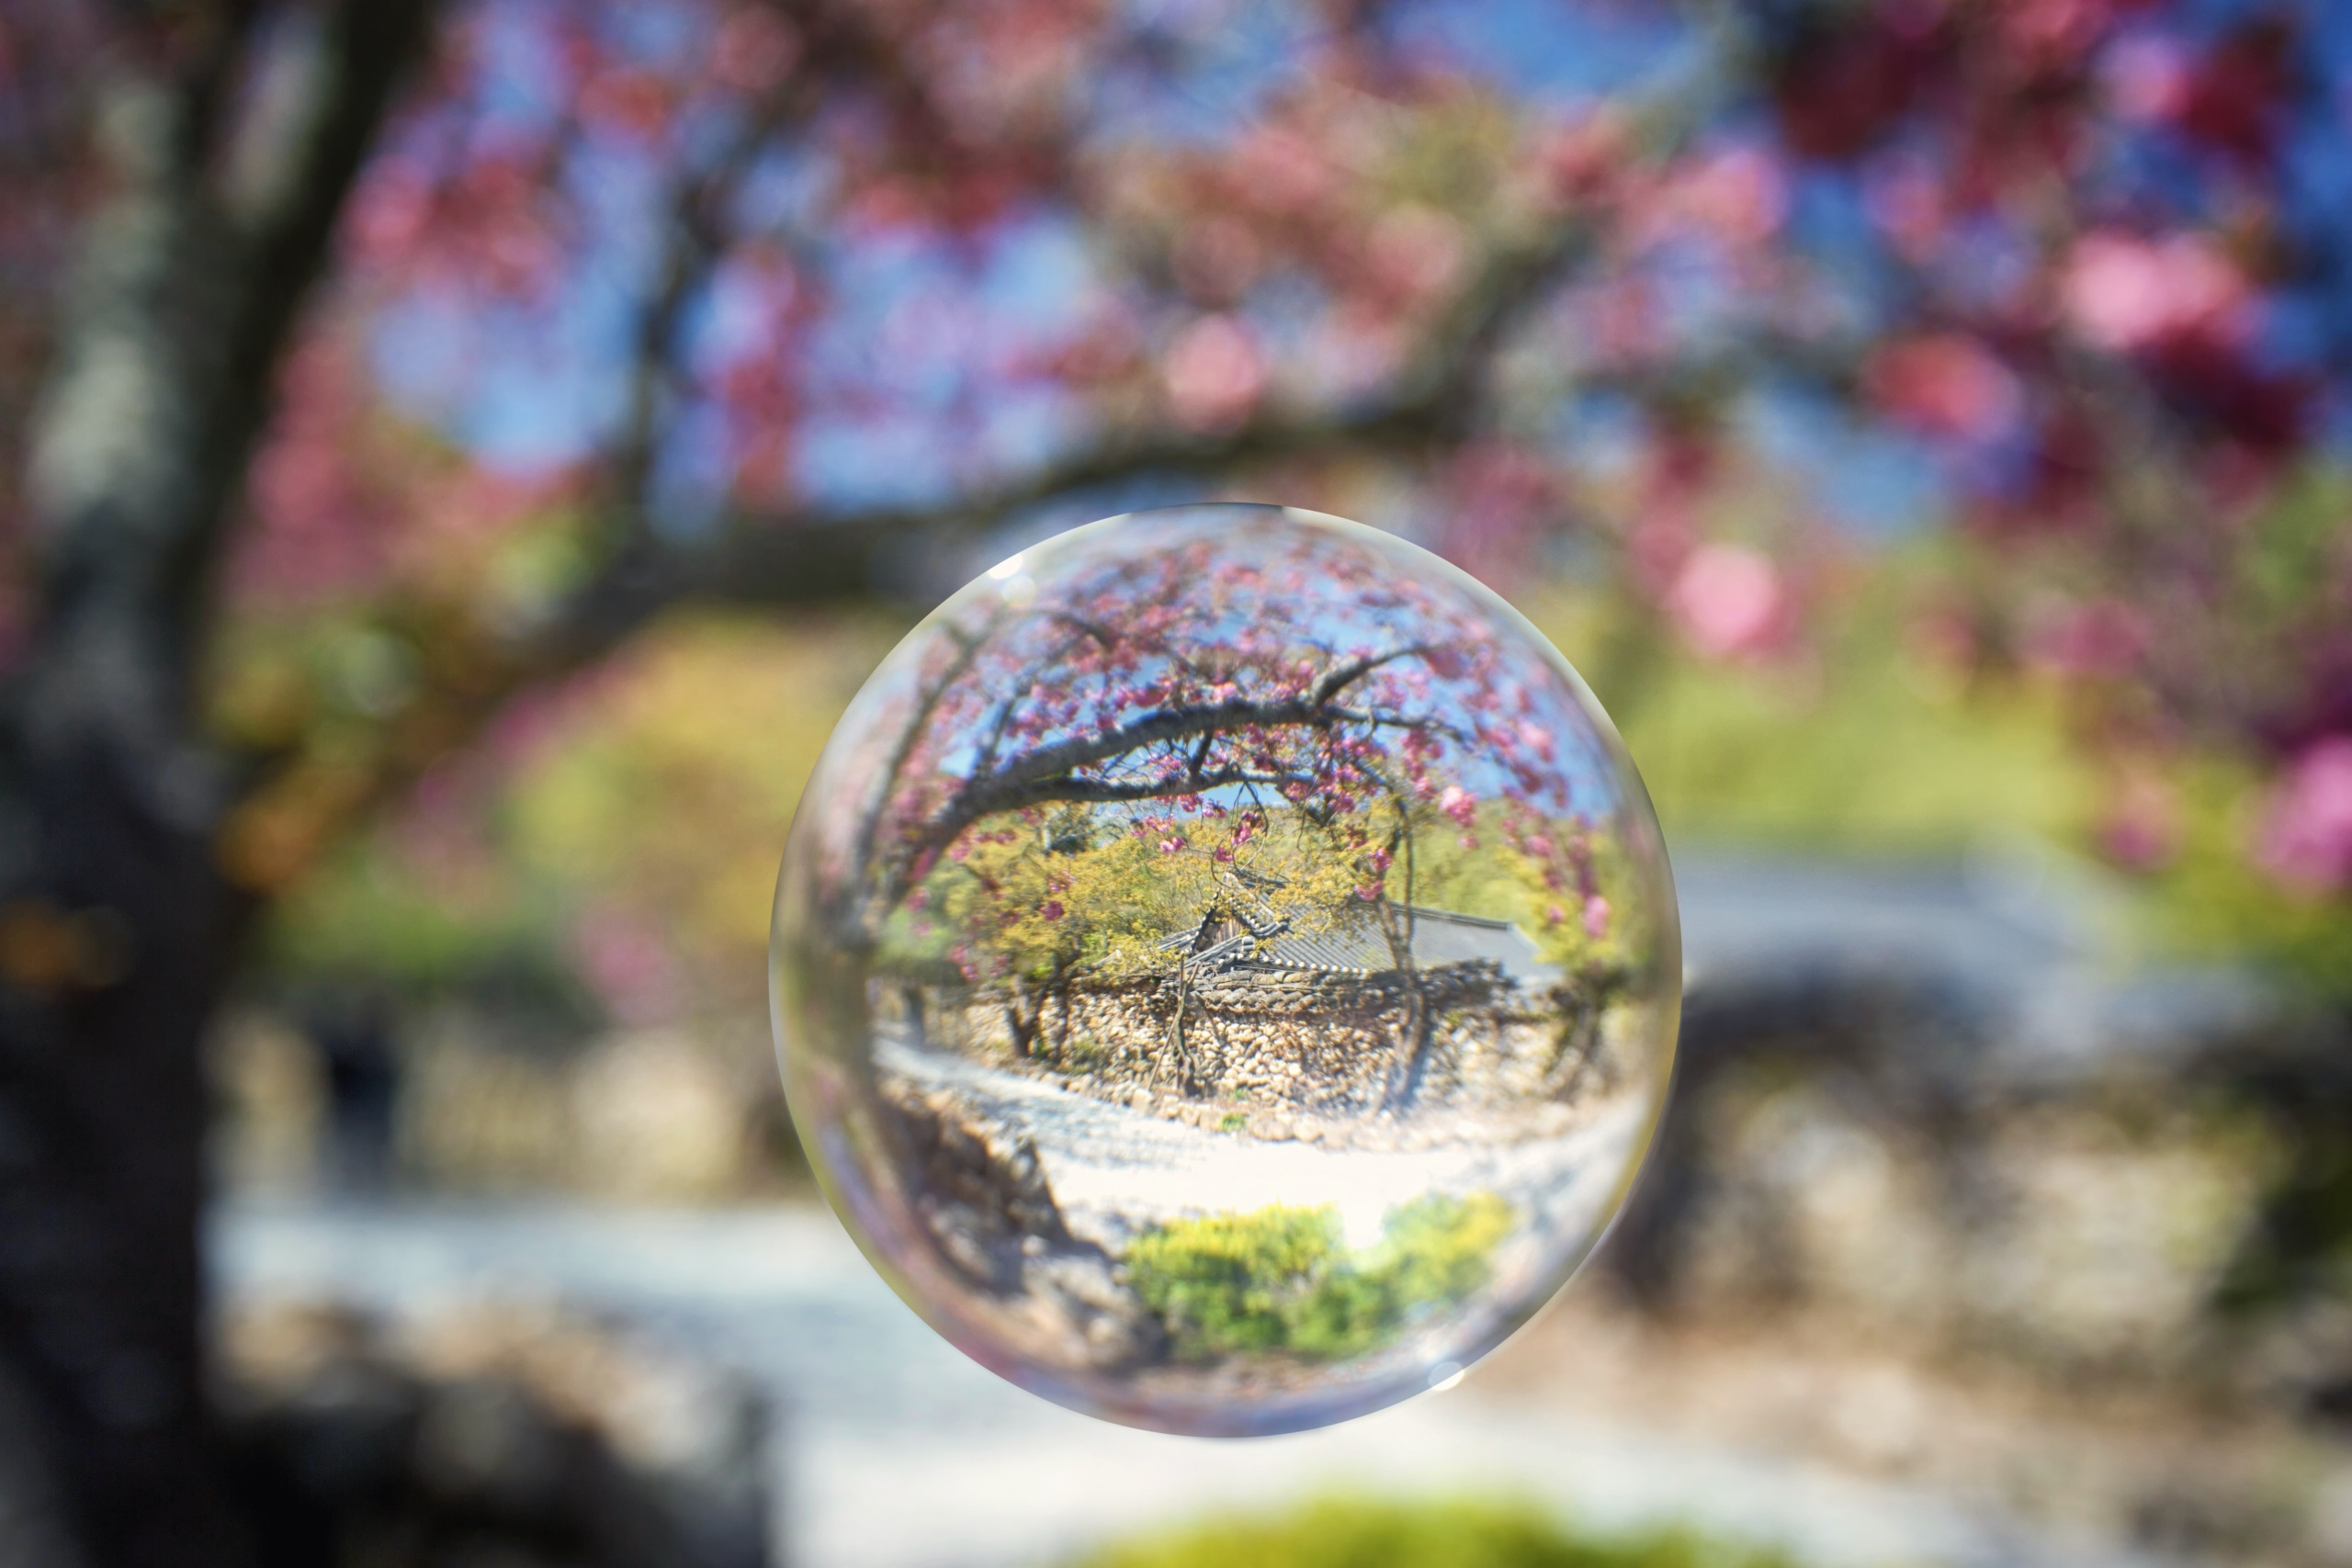 Lensball photography at Seonamsa in South Korea.